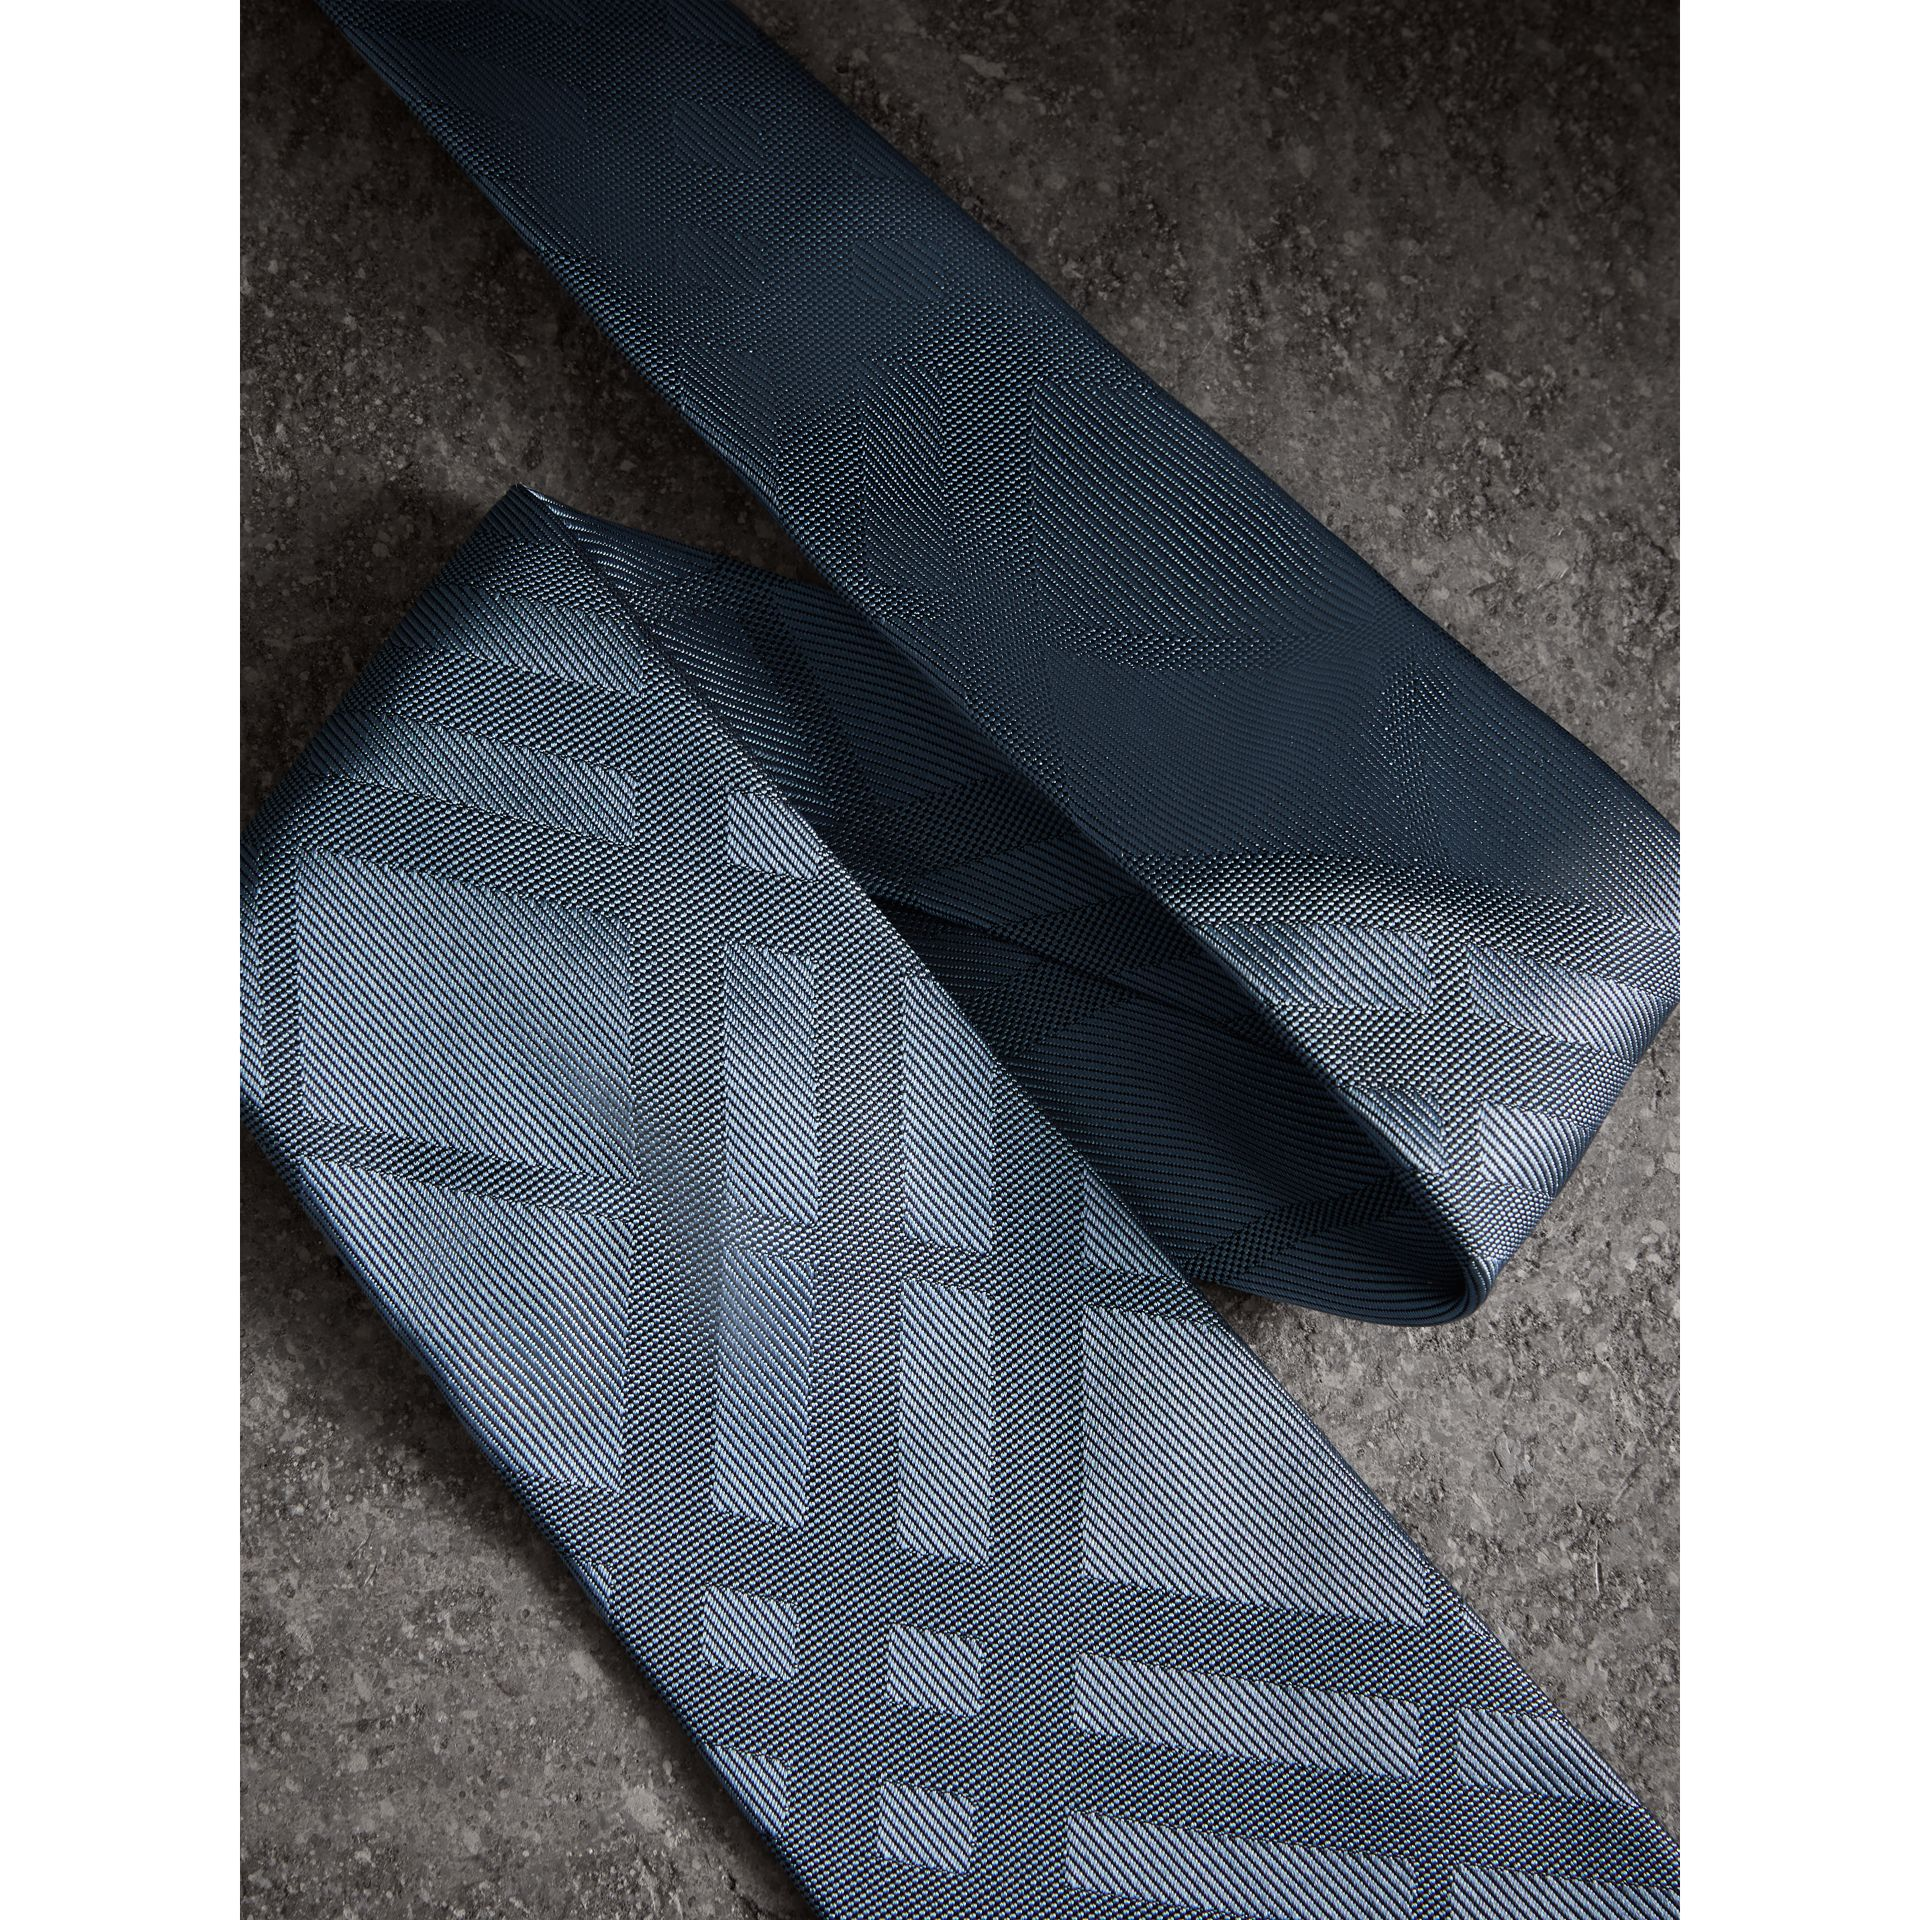 Classic Cut Check Silk Jacquard Tie in Light Blue - Men | Burberry - gallery image 1